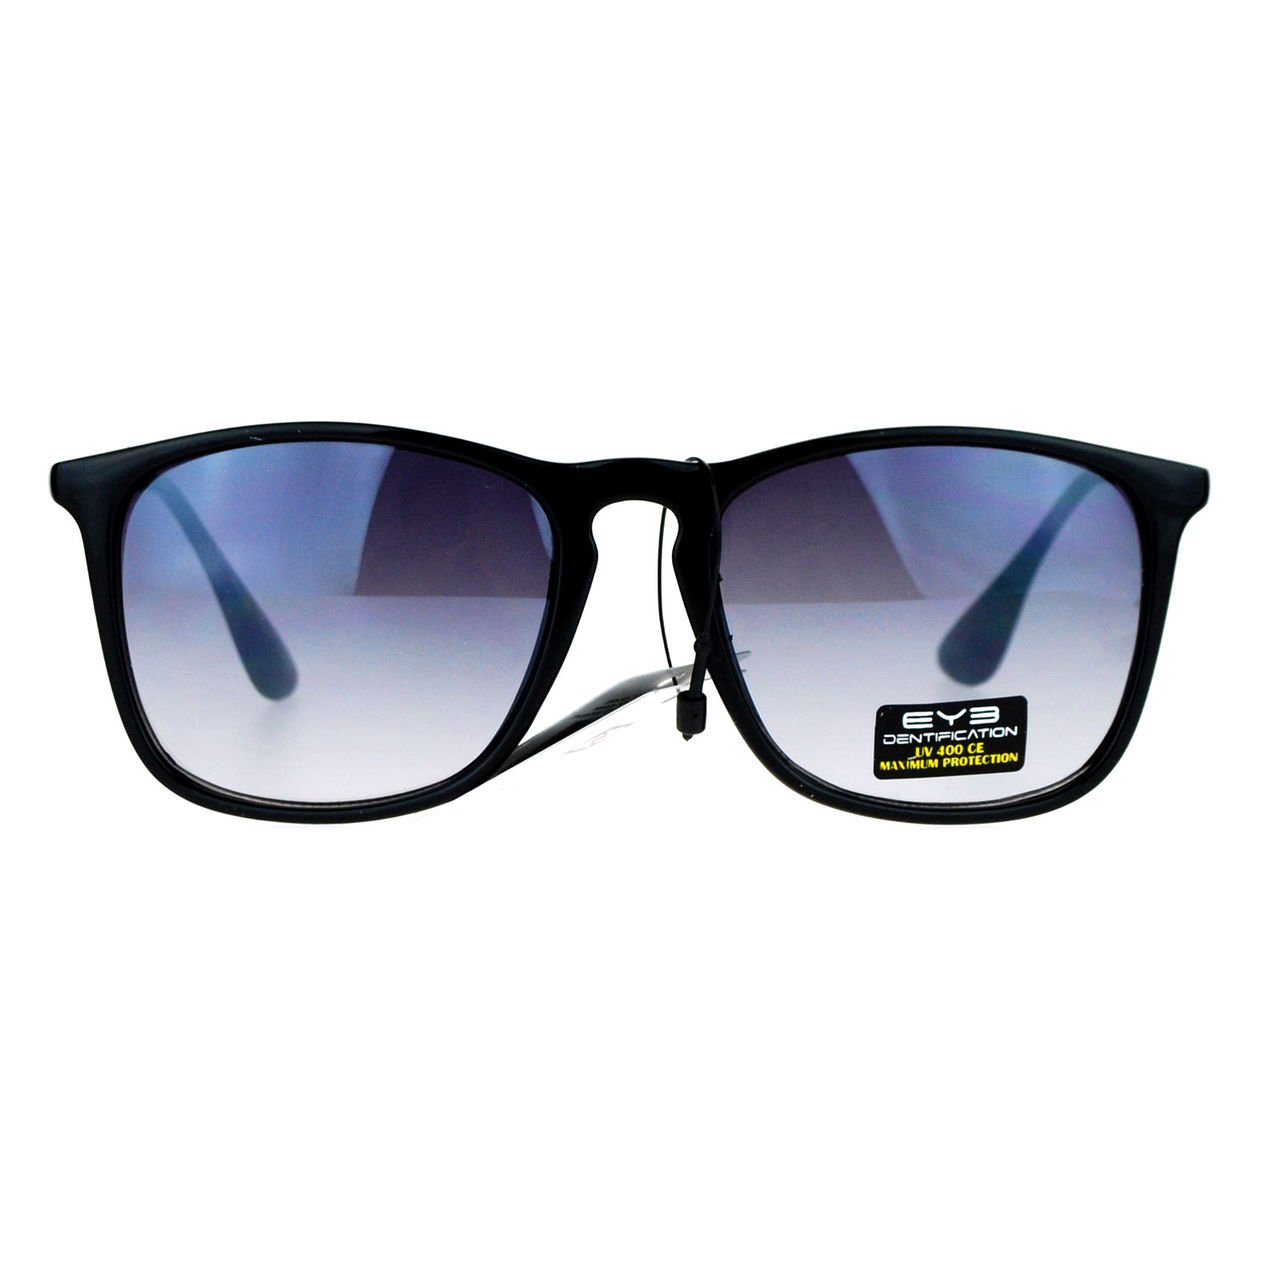 UV Protection Unisex Sunglasses Classic Hipster Square Frame Shades